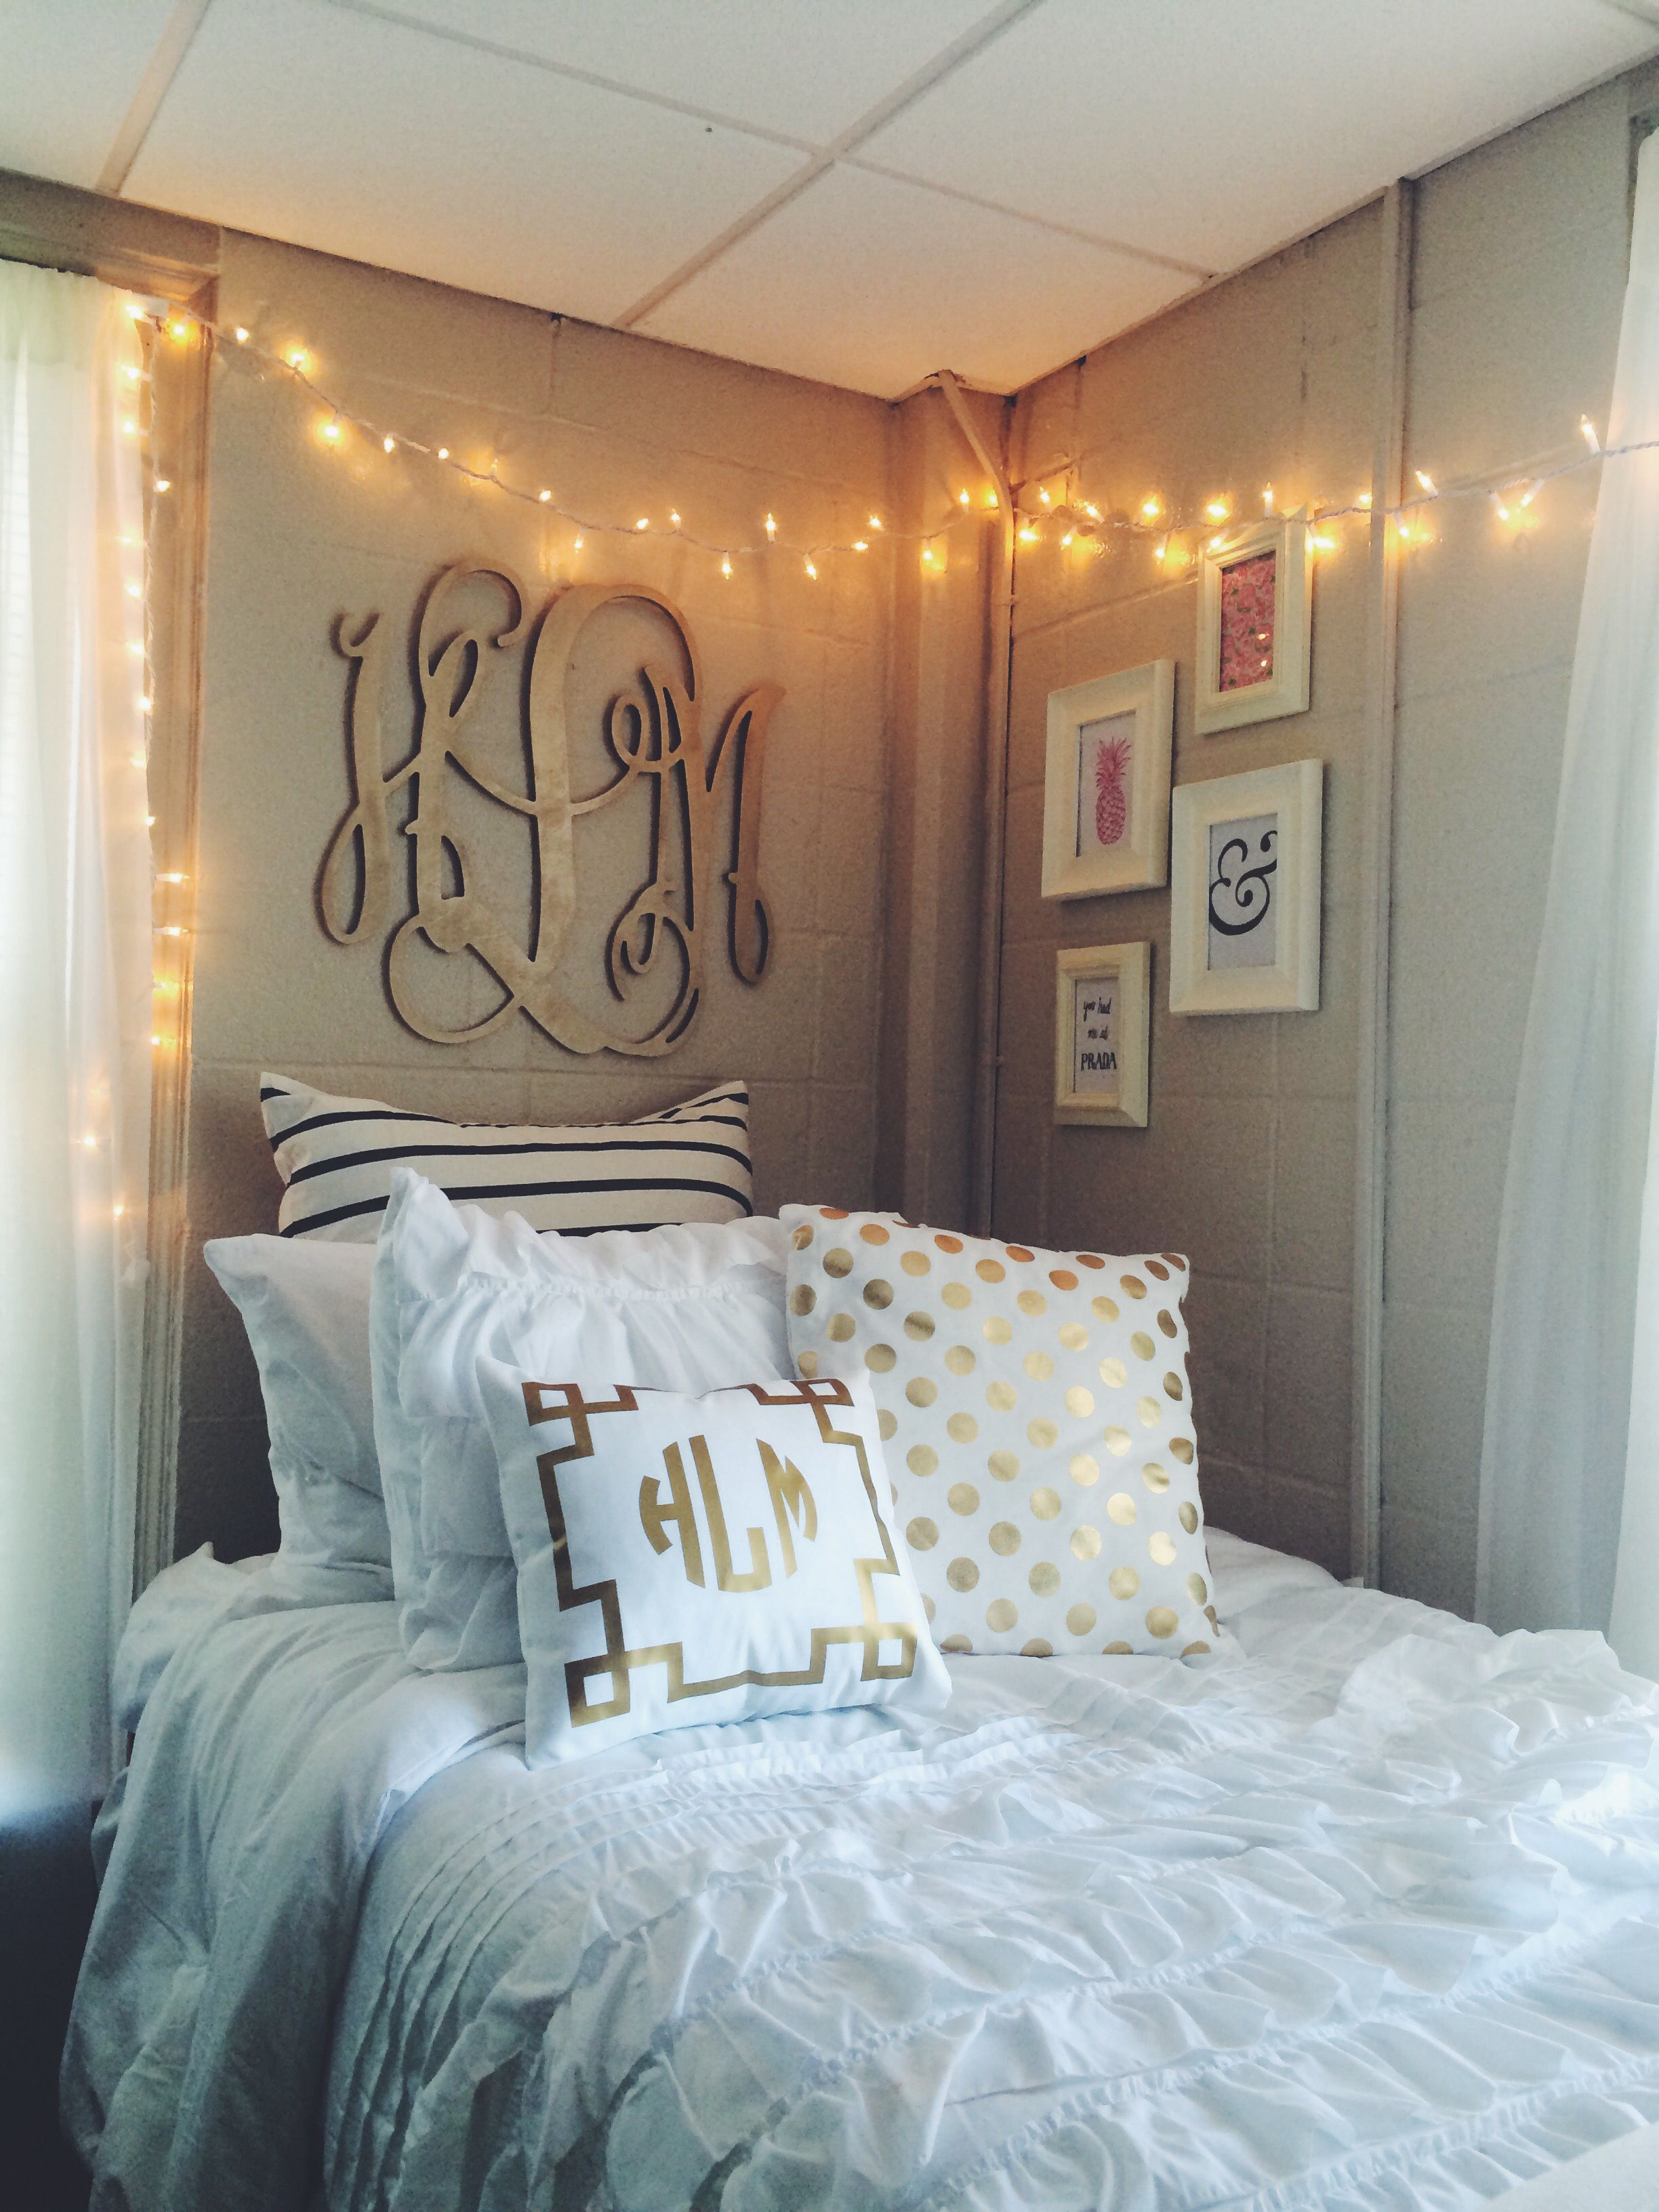 My dorm at samford university home pinterest dorm for Room decor dorm